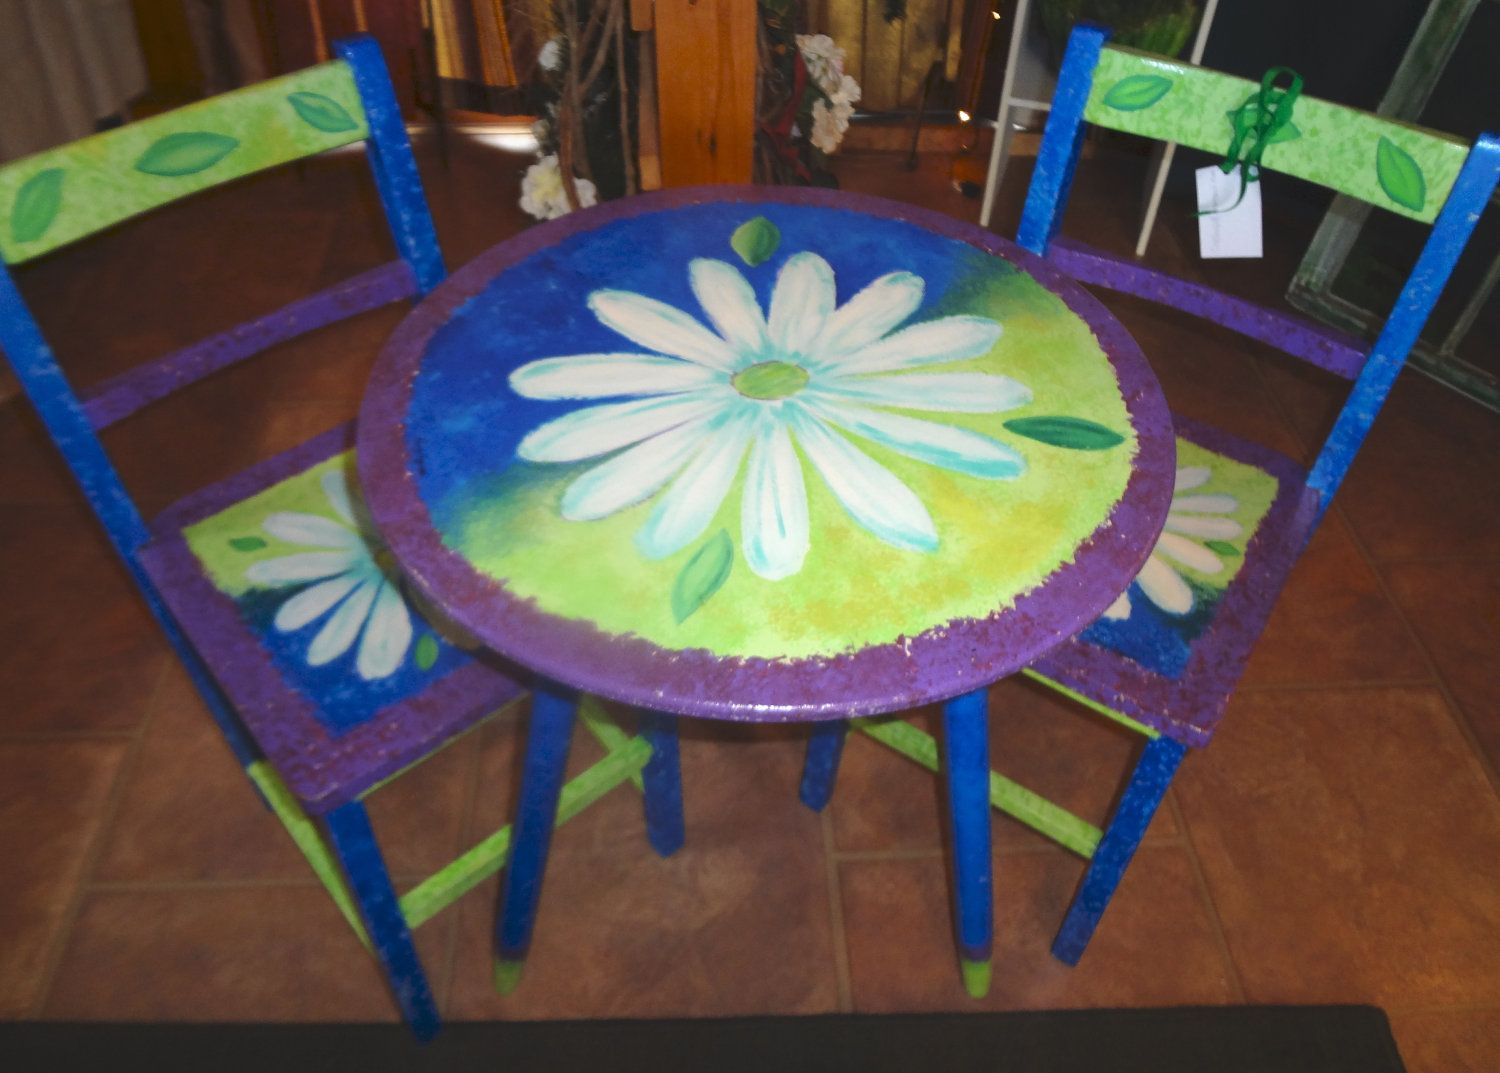 Funky Wooden Chairs Massage Chair Comparison Chart Hand Painted Furniture Upcycled Crazy